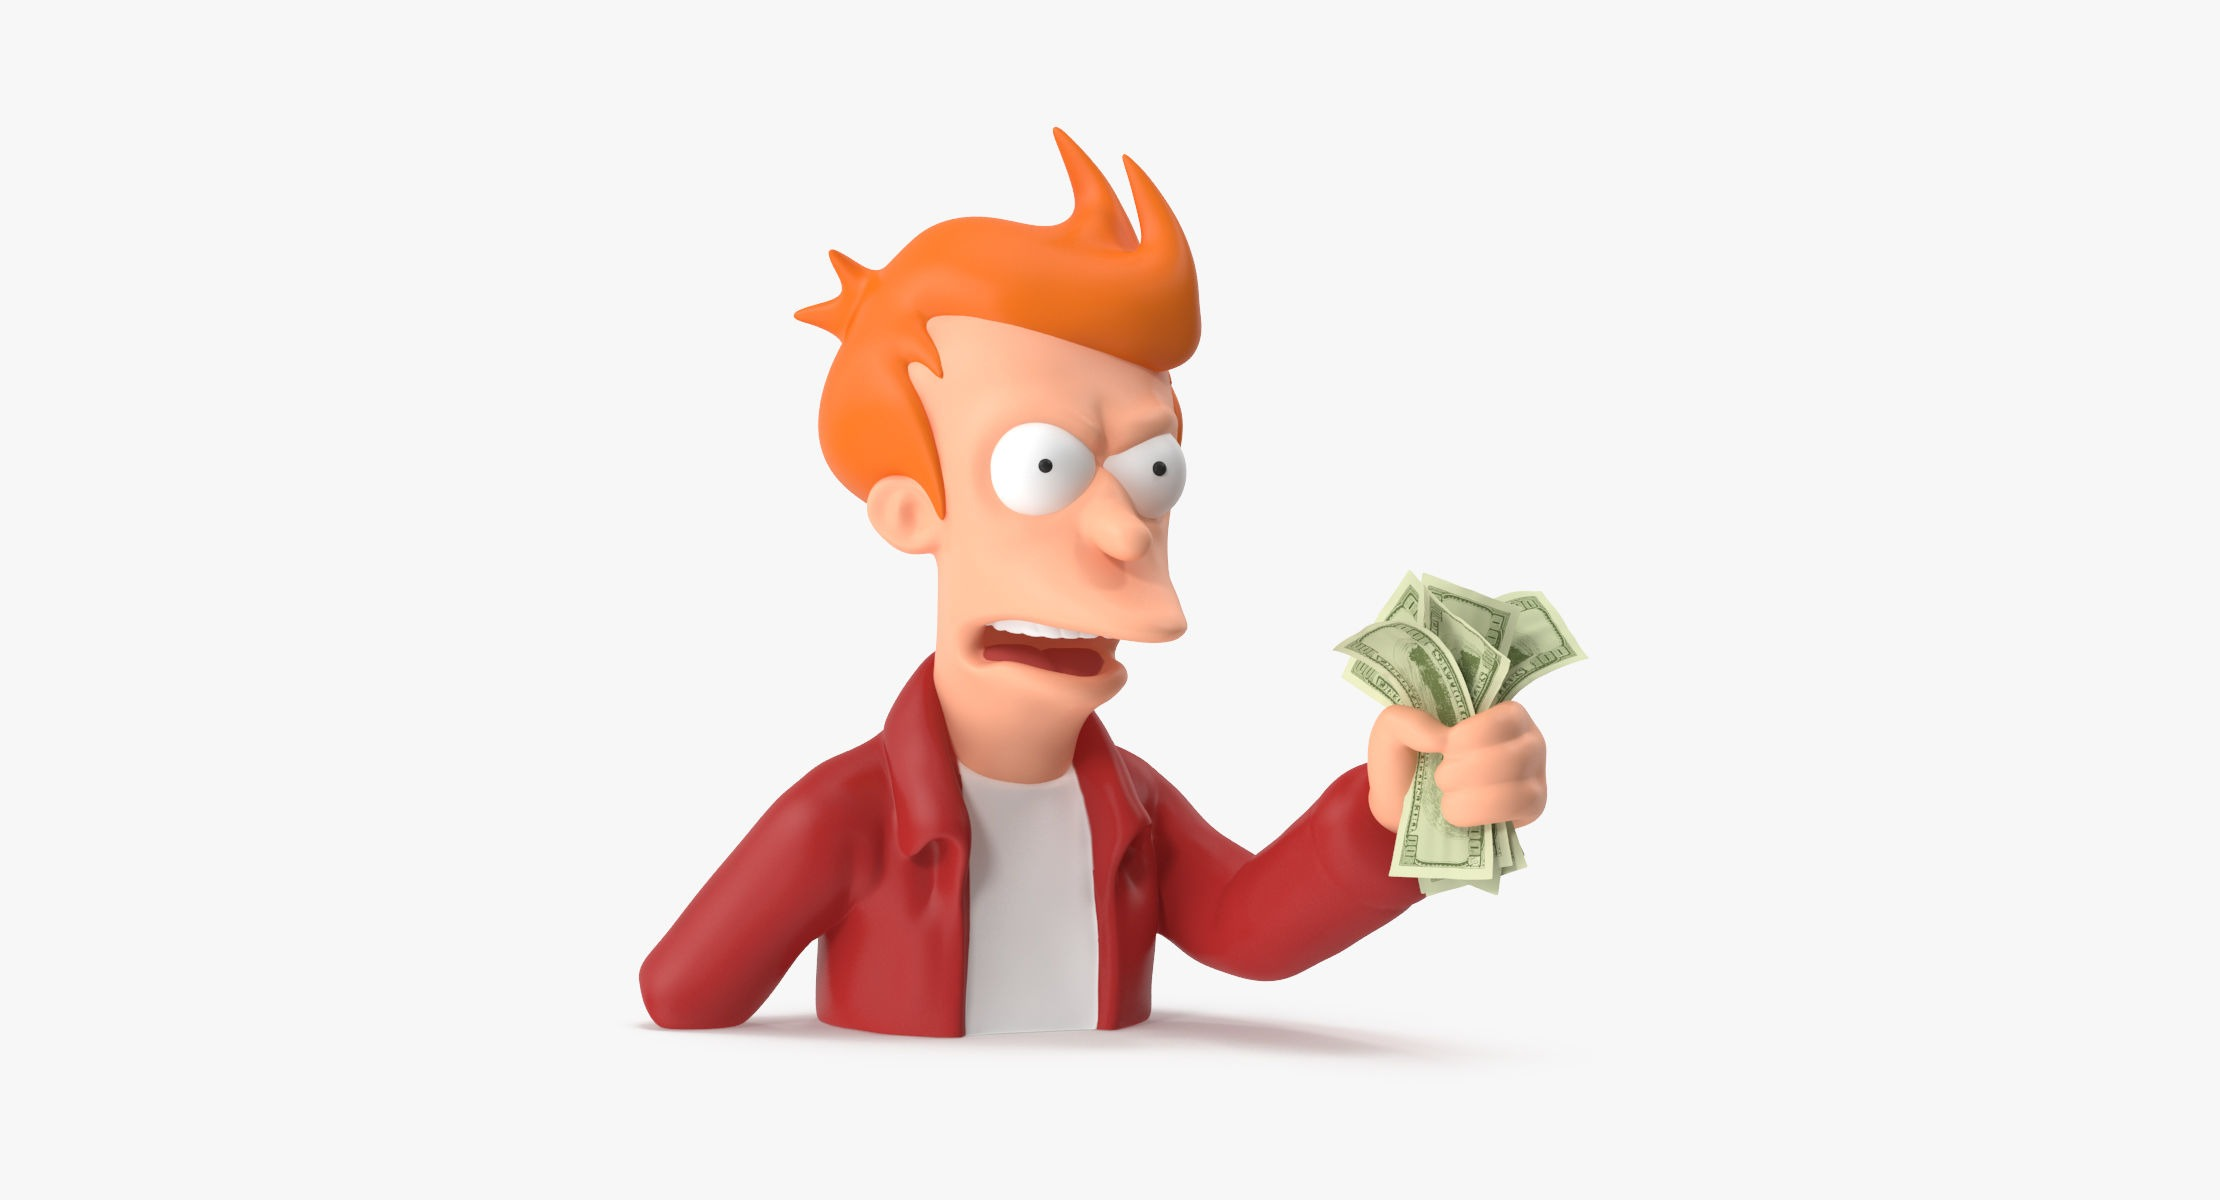 Fry - Shut Up and Take My Money - reel 1